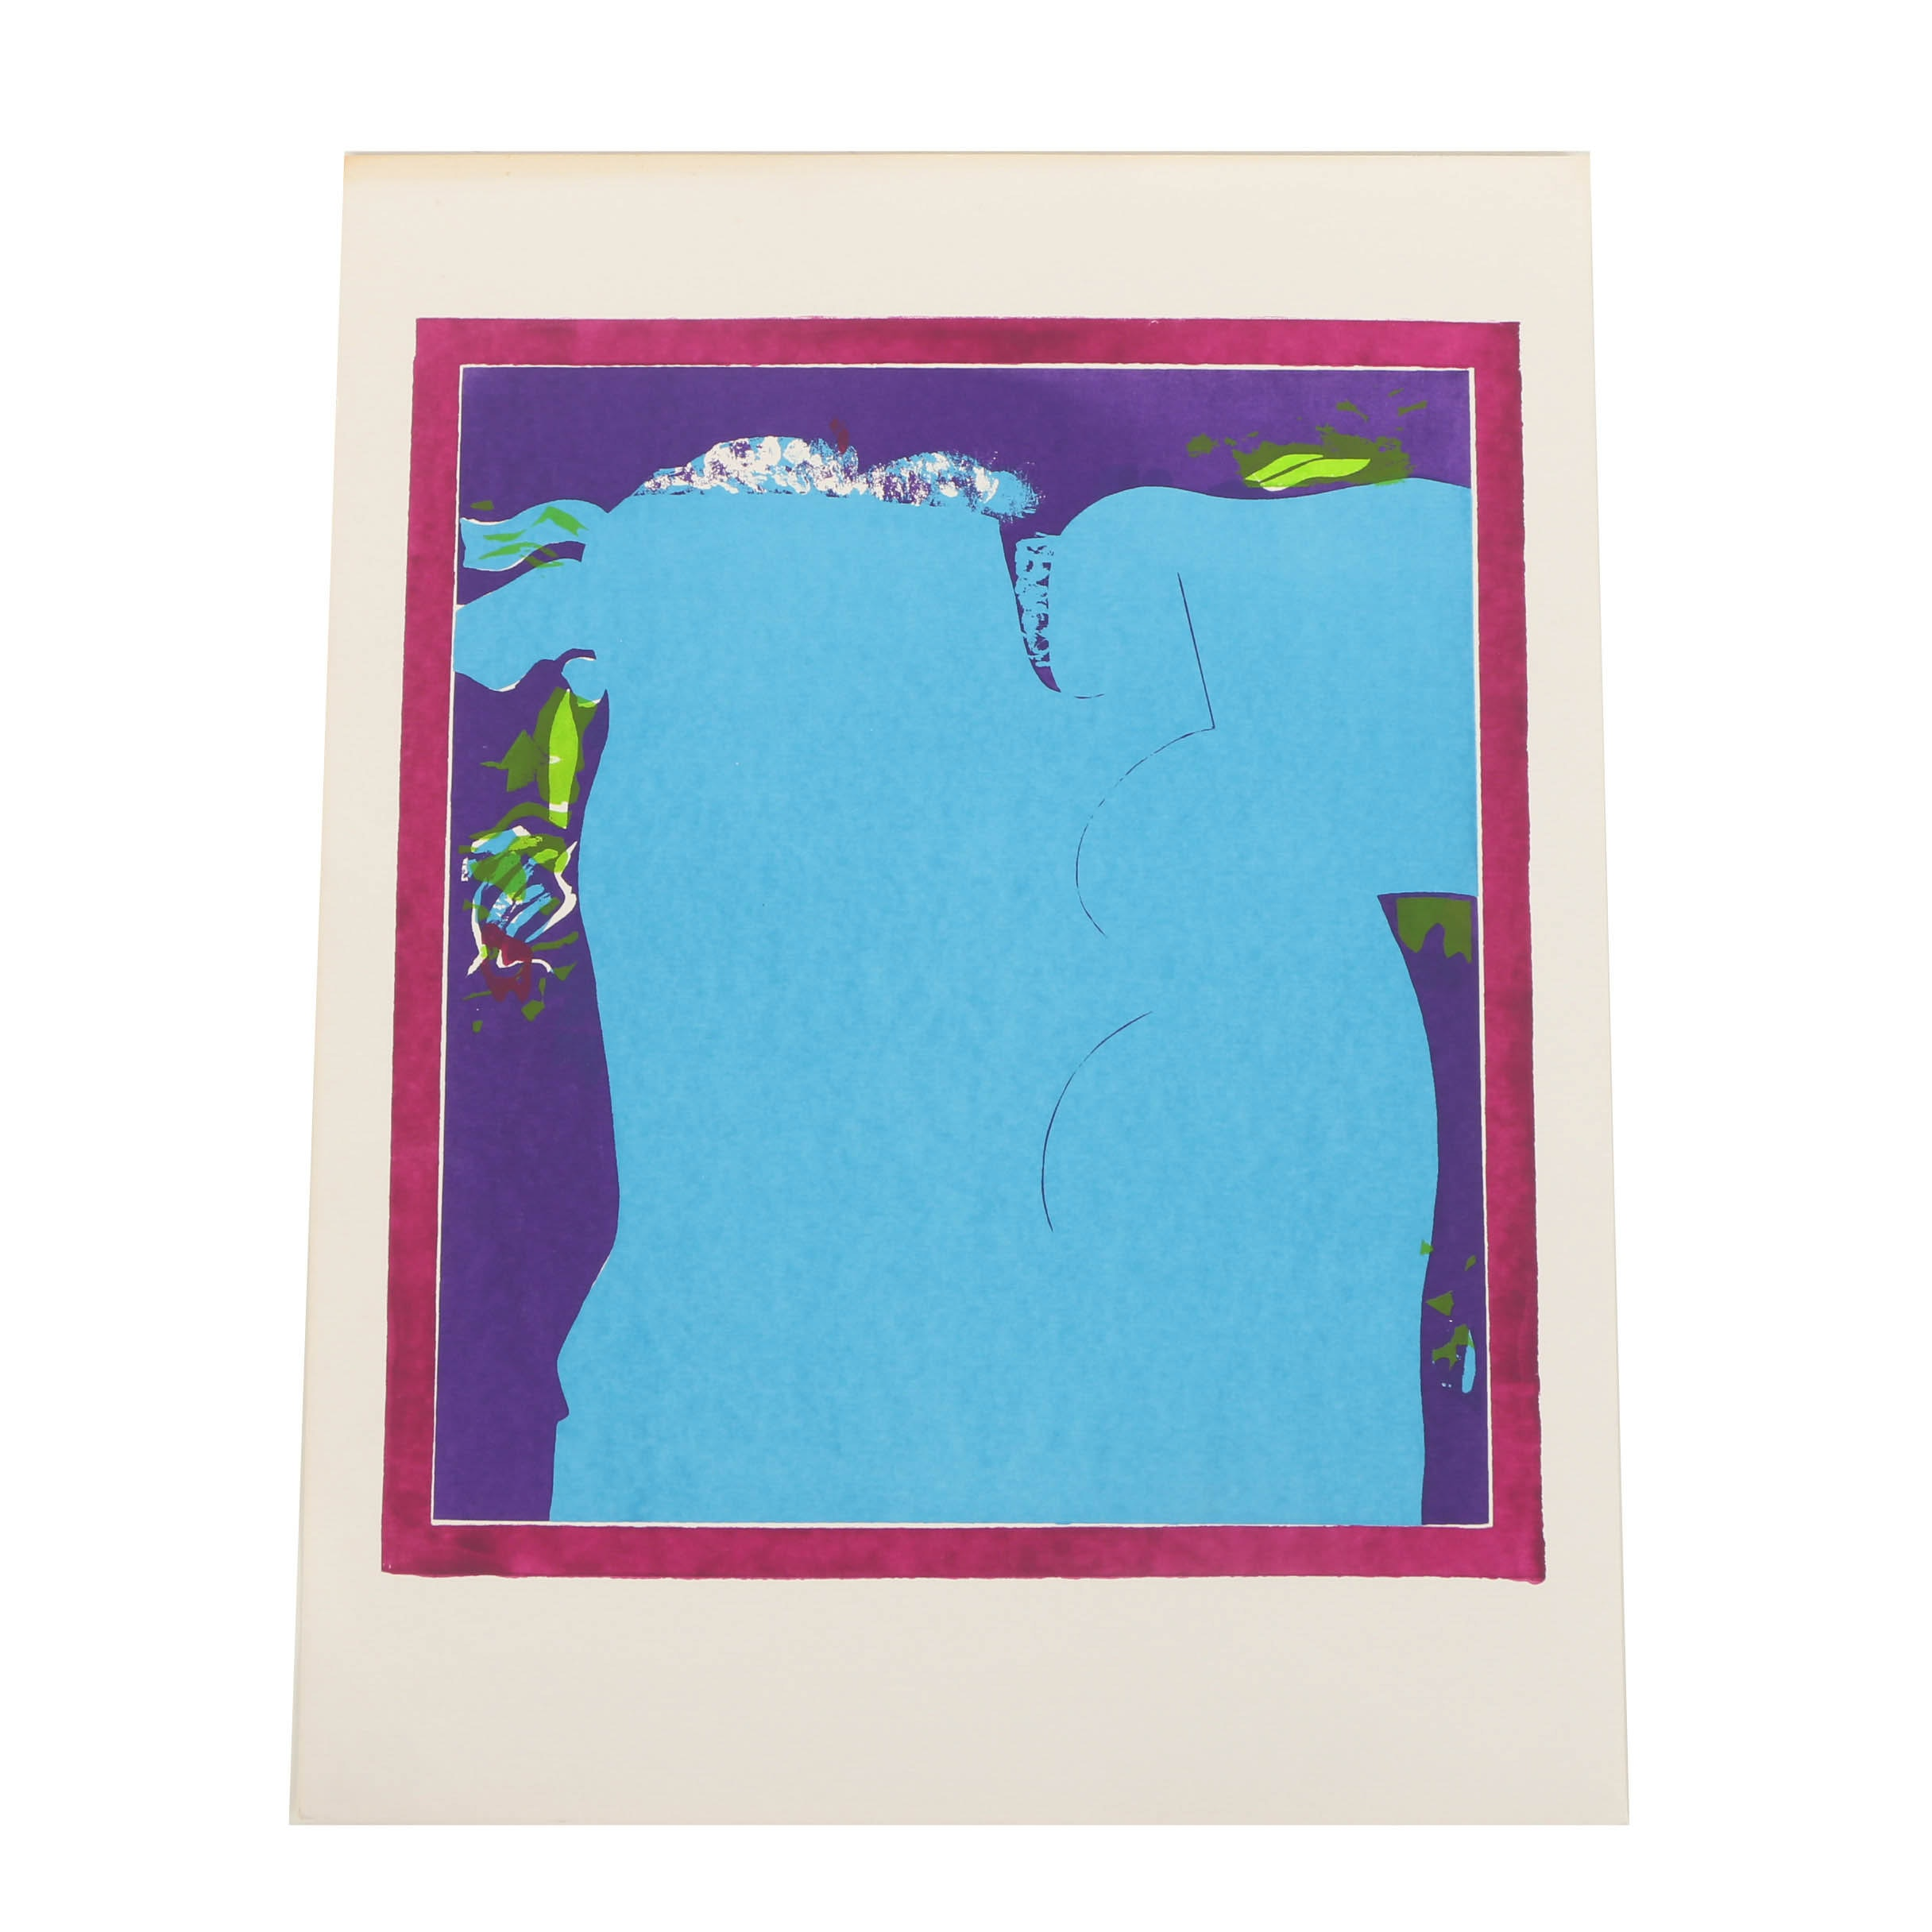 Attributed to Sylvia Halperin Serigraph Print